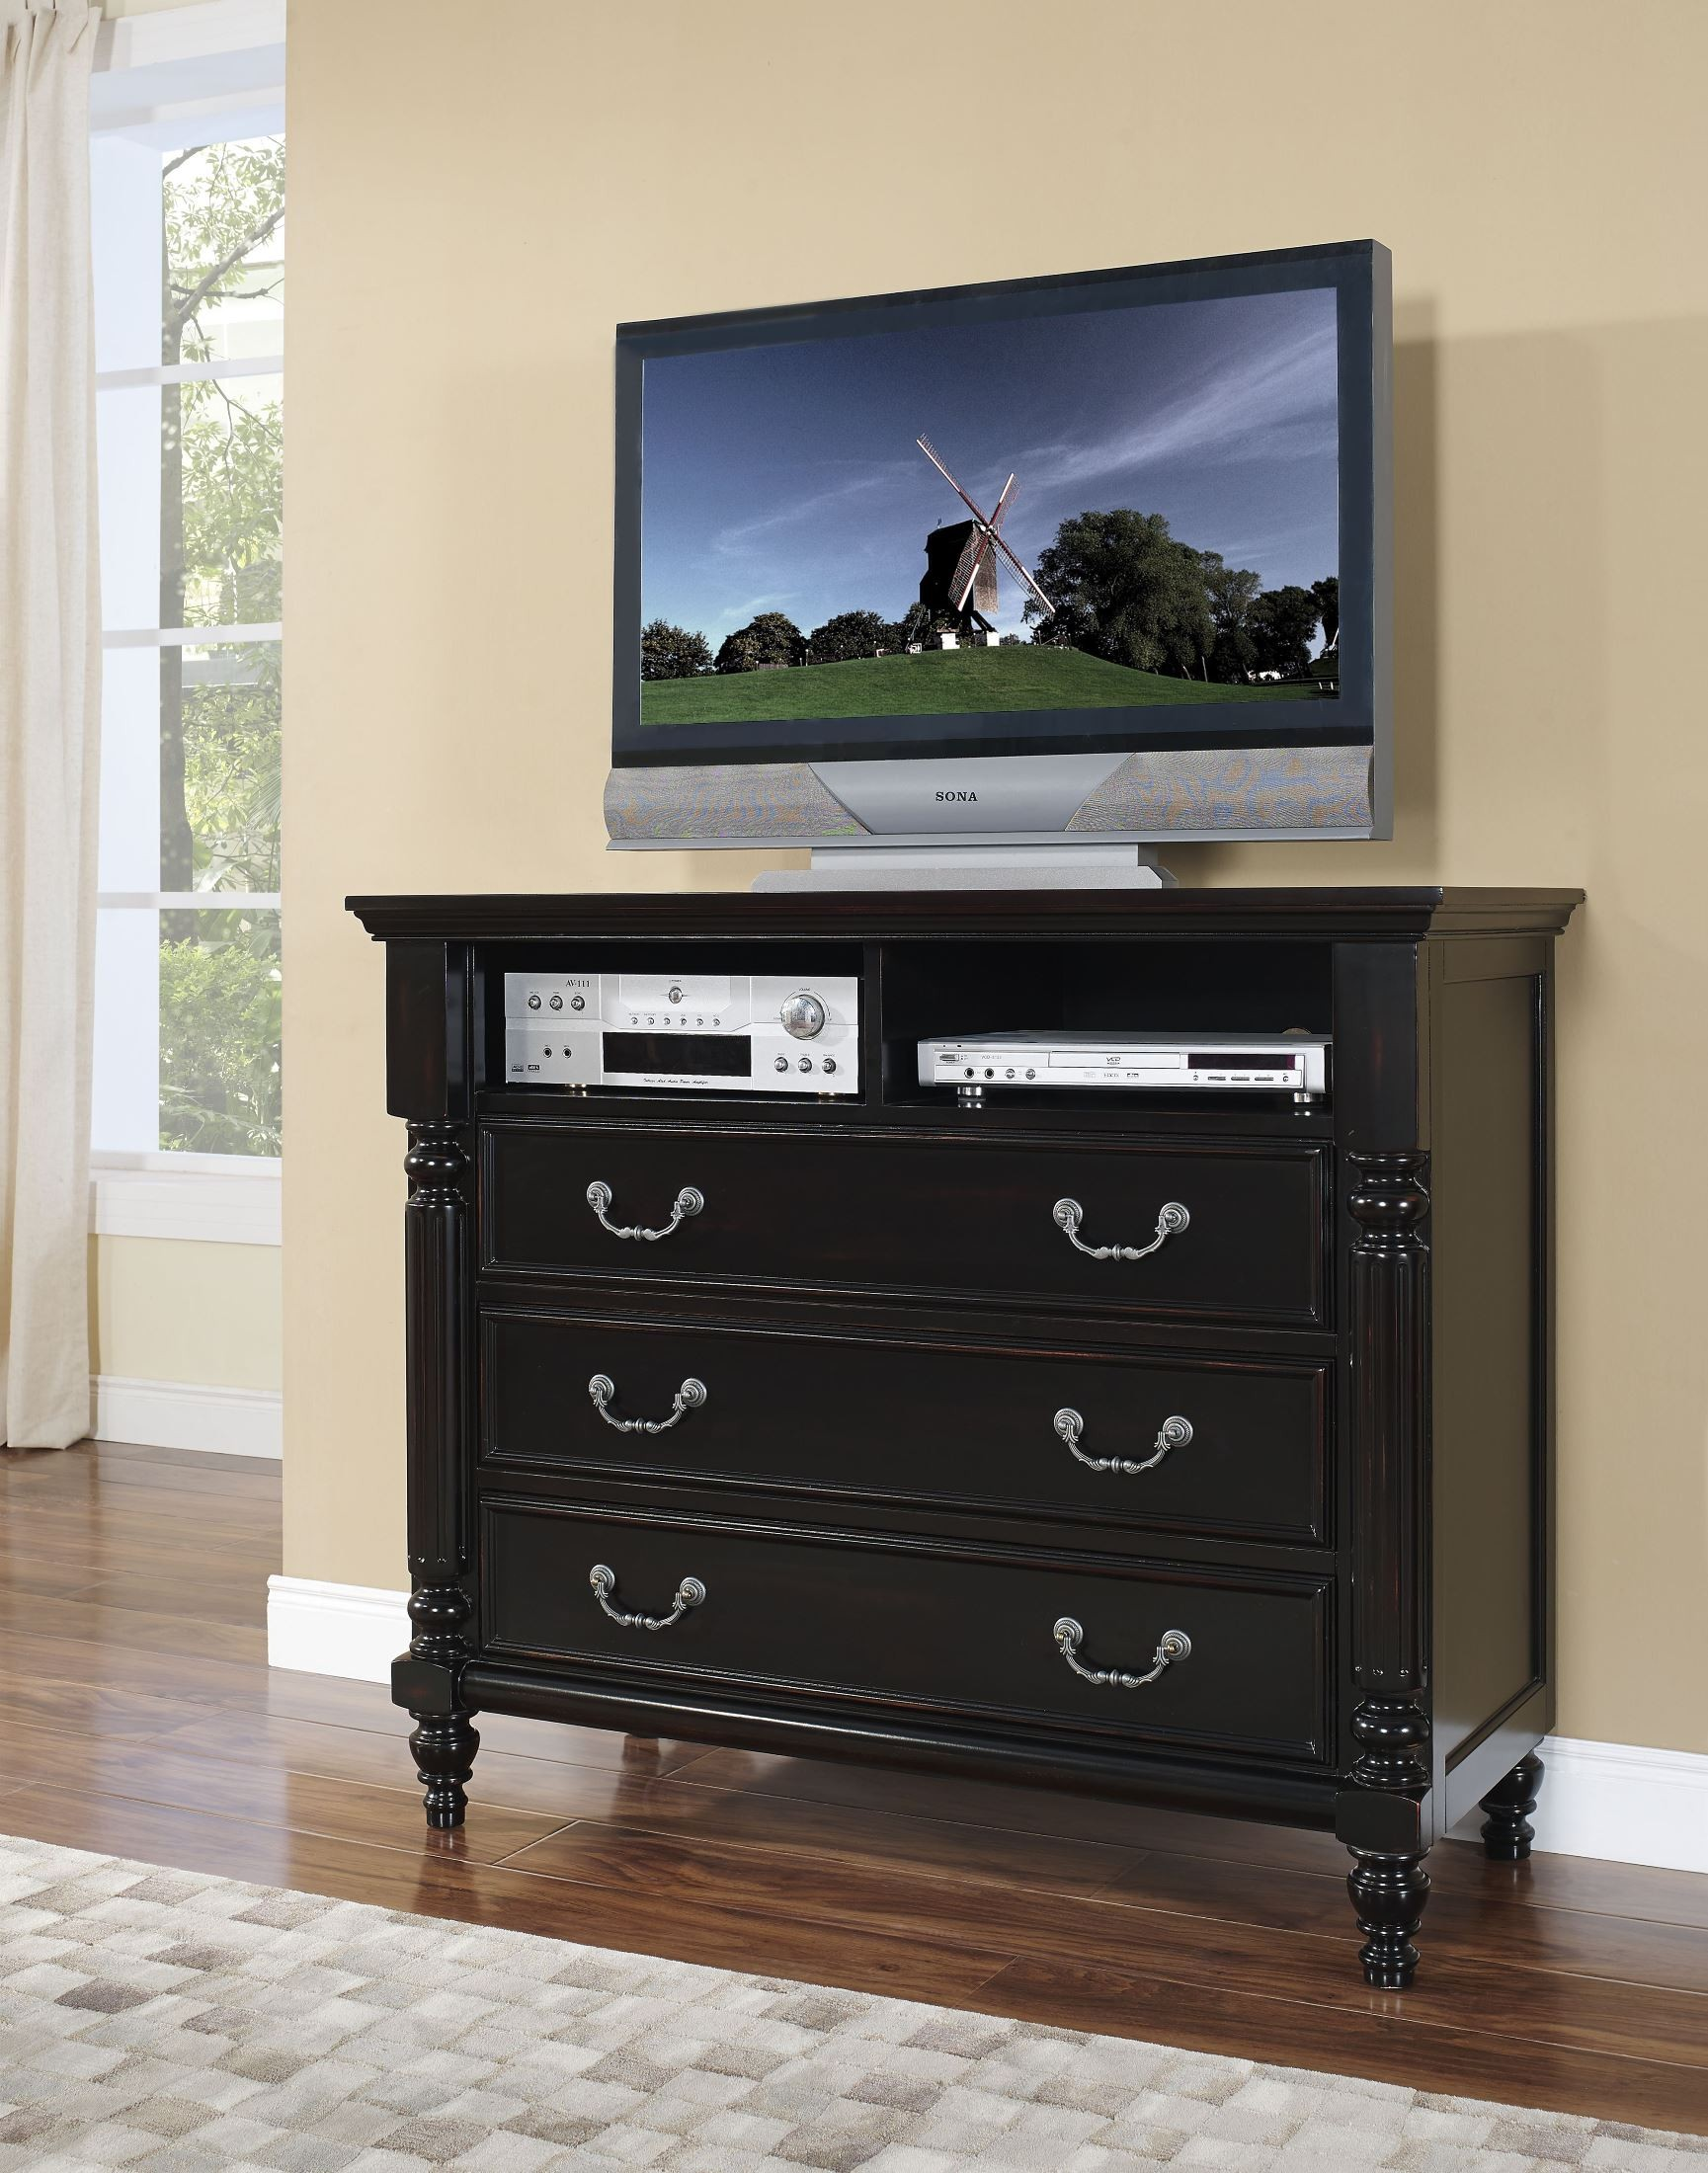 Media Chest For Bedroom Martinique Rubbed Black Canopy Bedroom Set With Drapes From New